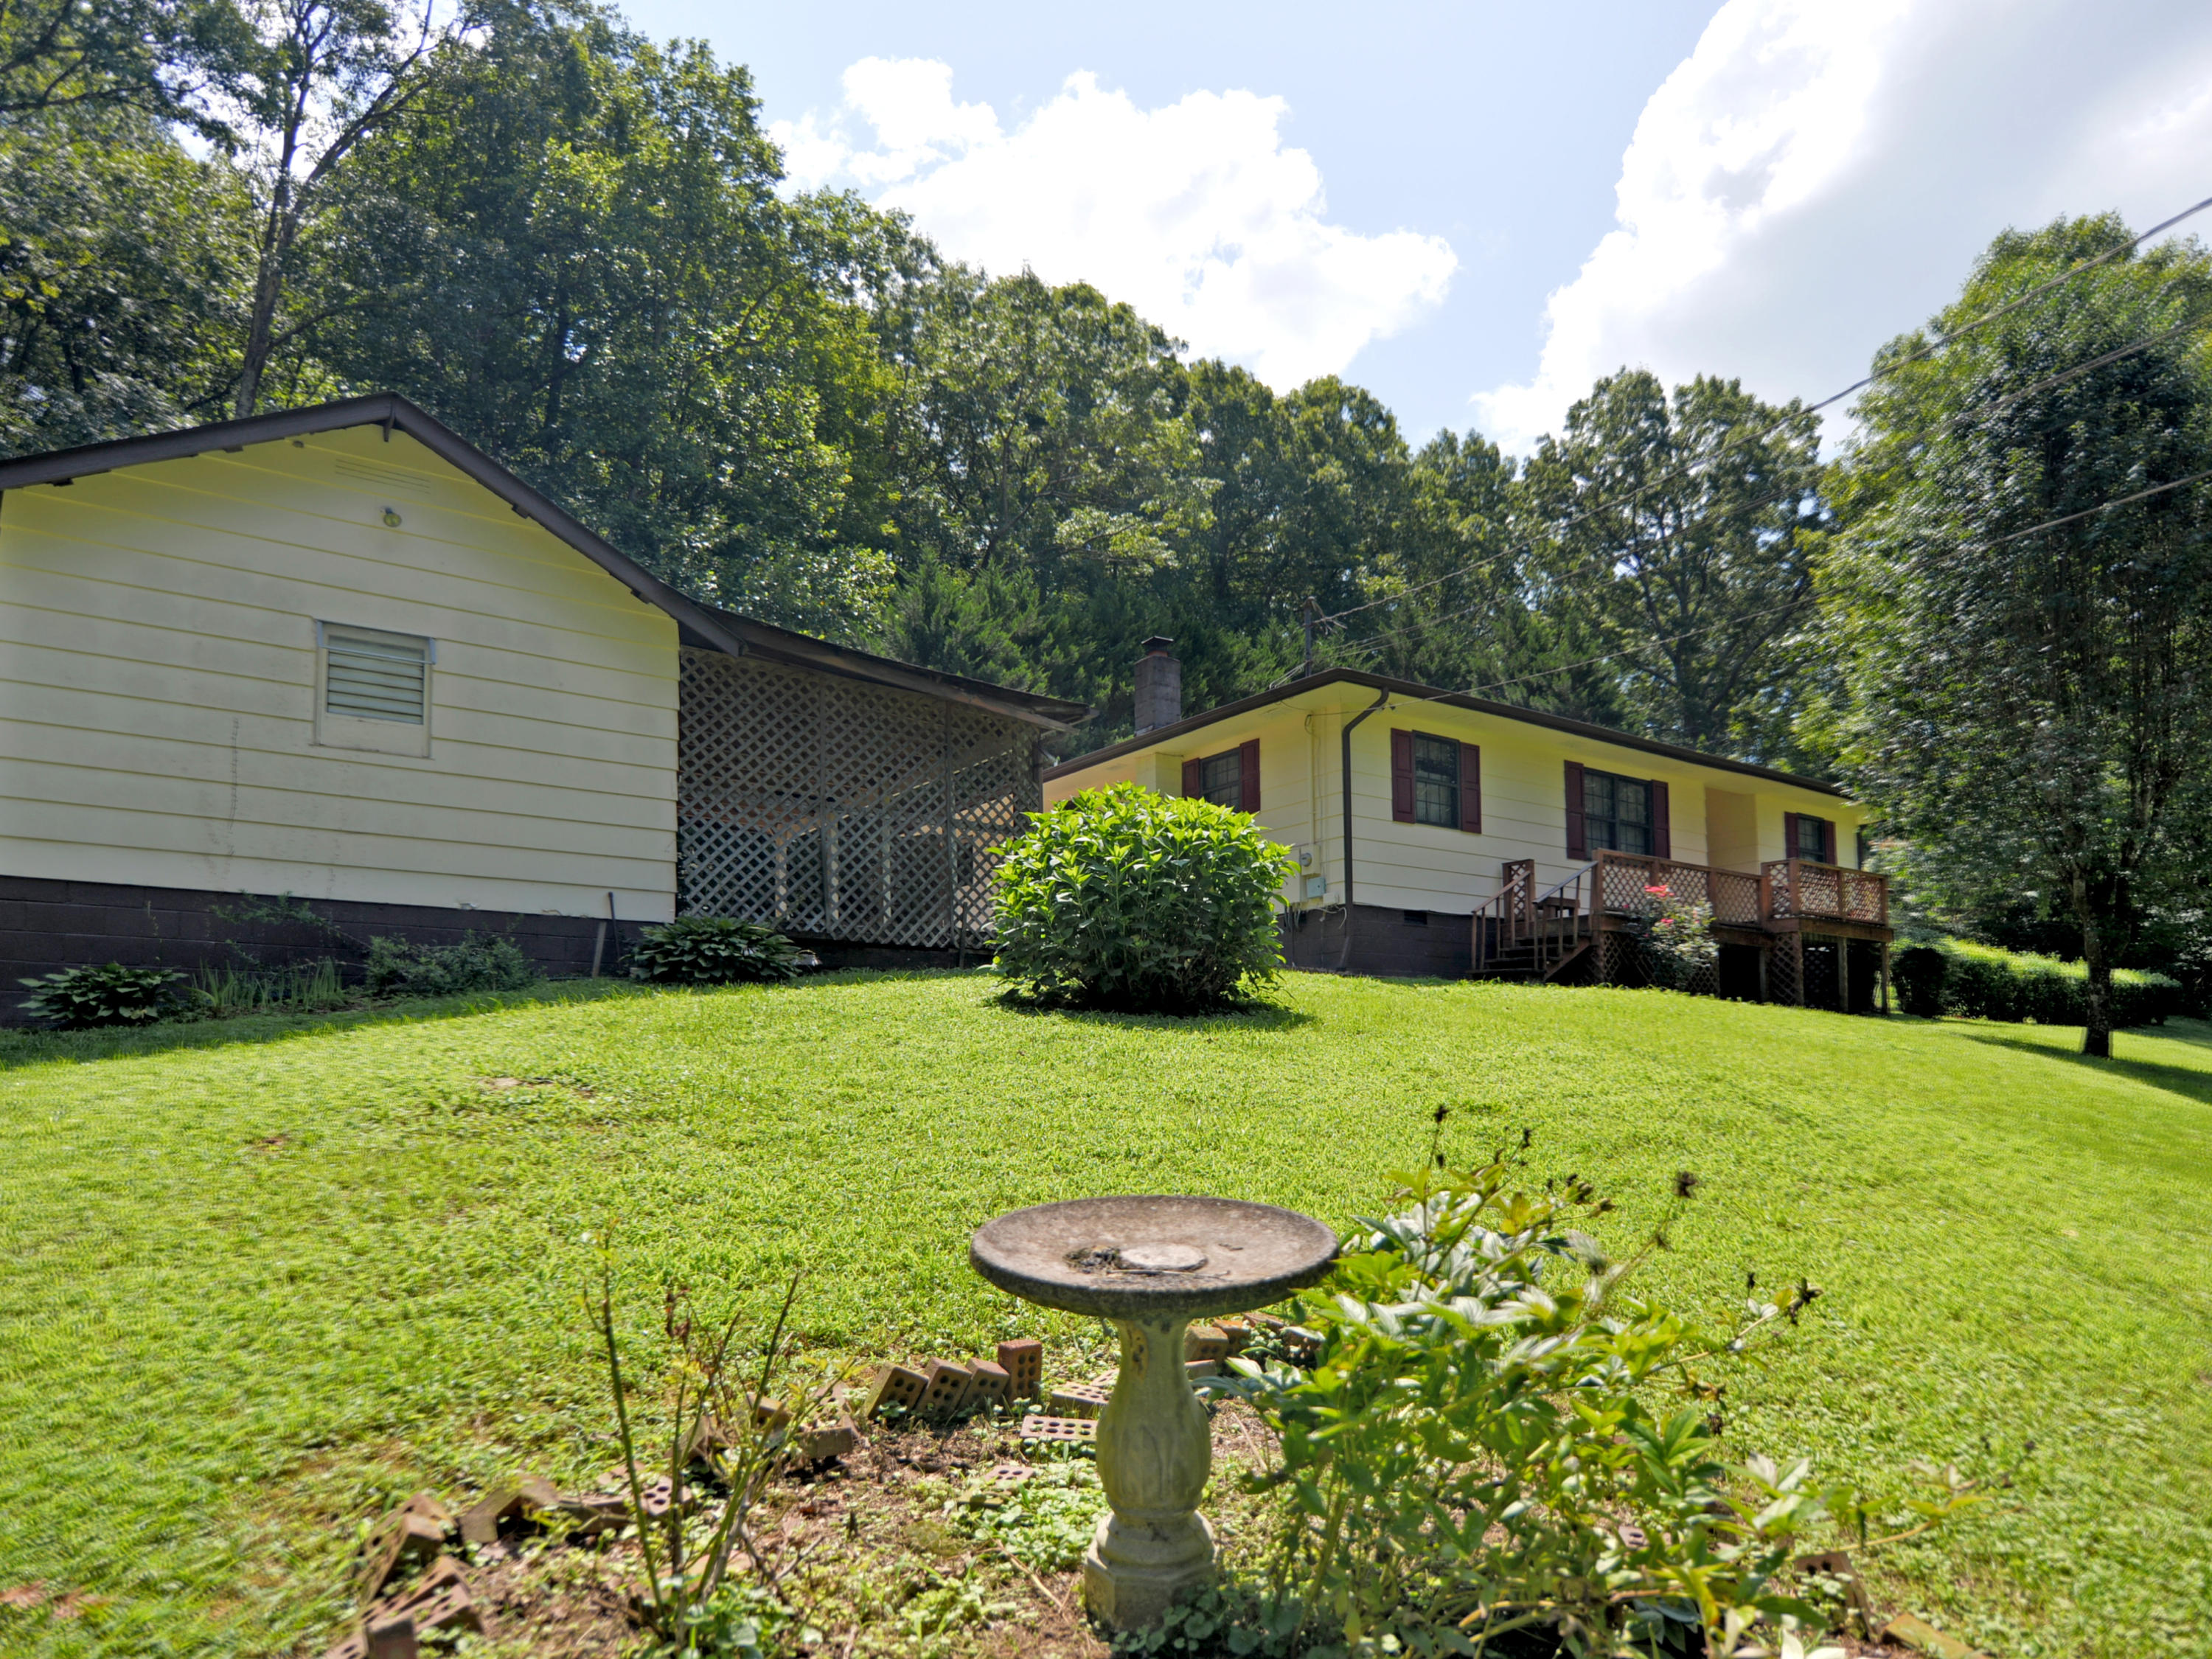 20190730125704985419000000-o Clinton anderson county homes for sale